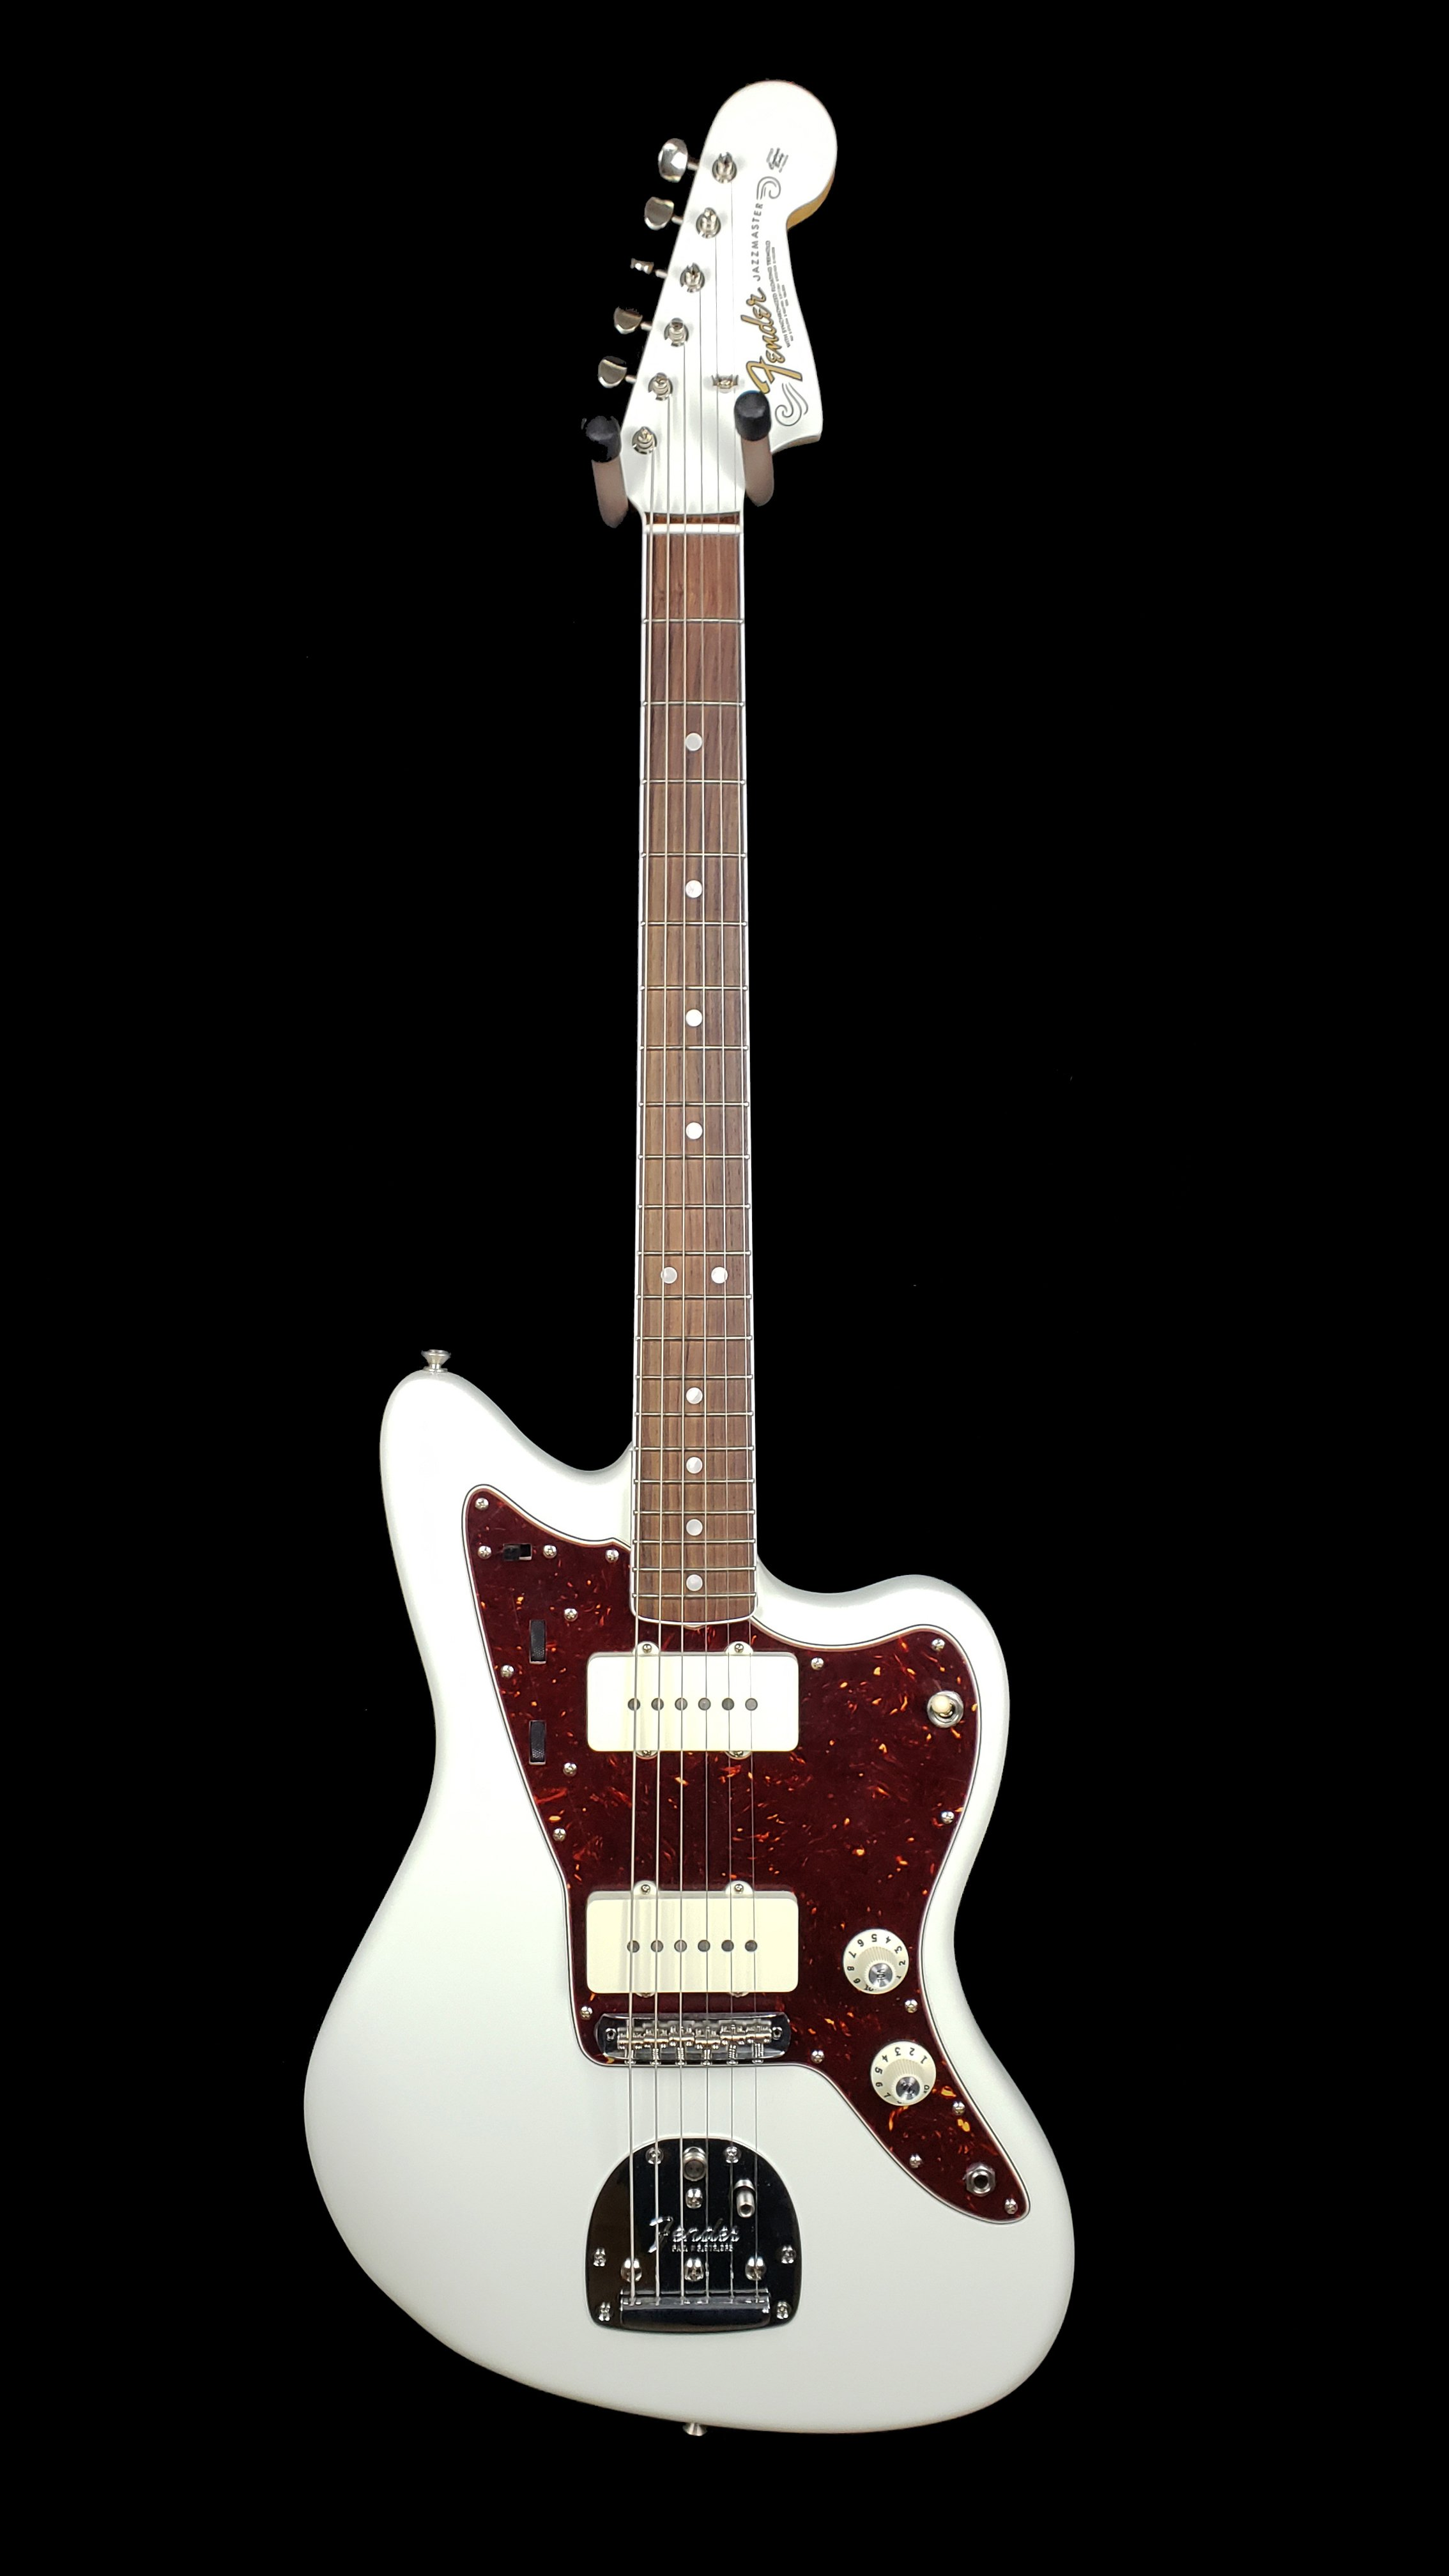 Fender American Vintage Olympic White '65 Jazzmaster